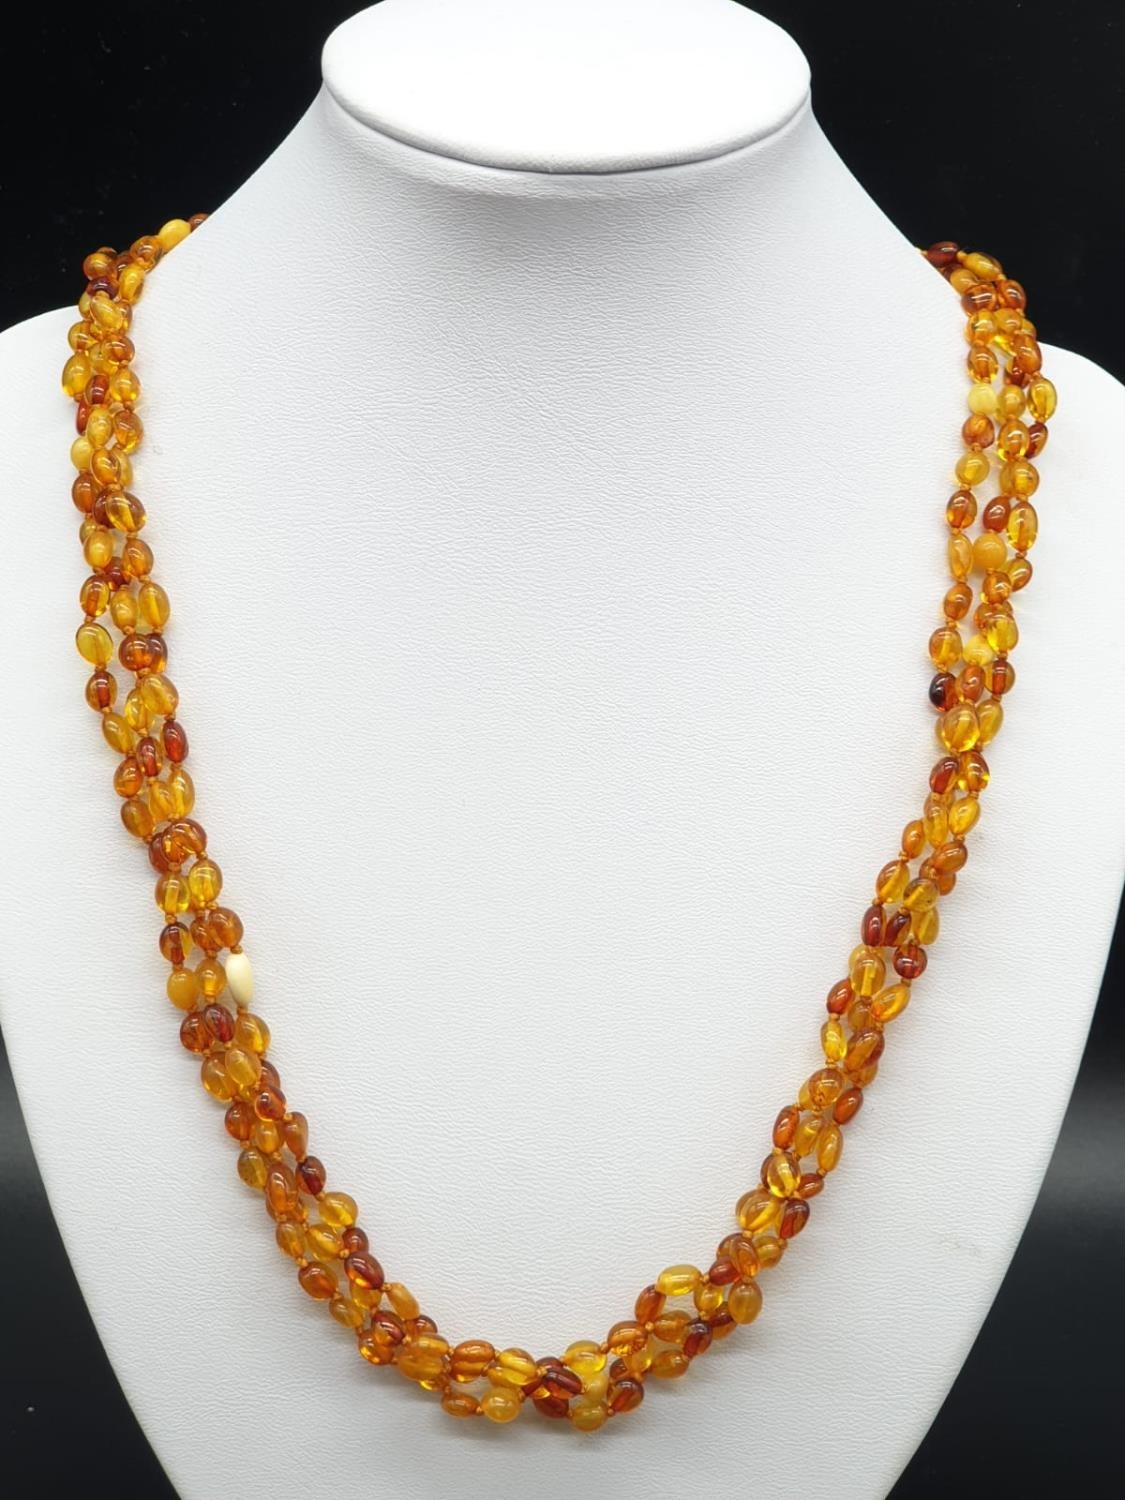 3 Rows Amber Necklace with Silver Clasp 14.8g 45cms